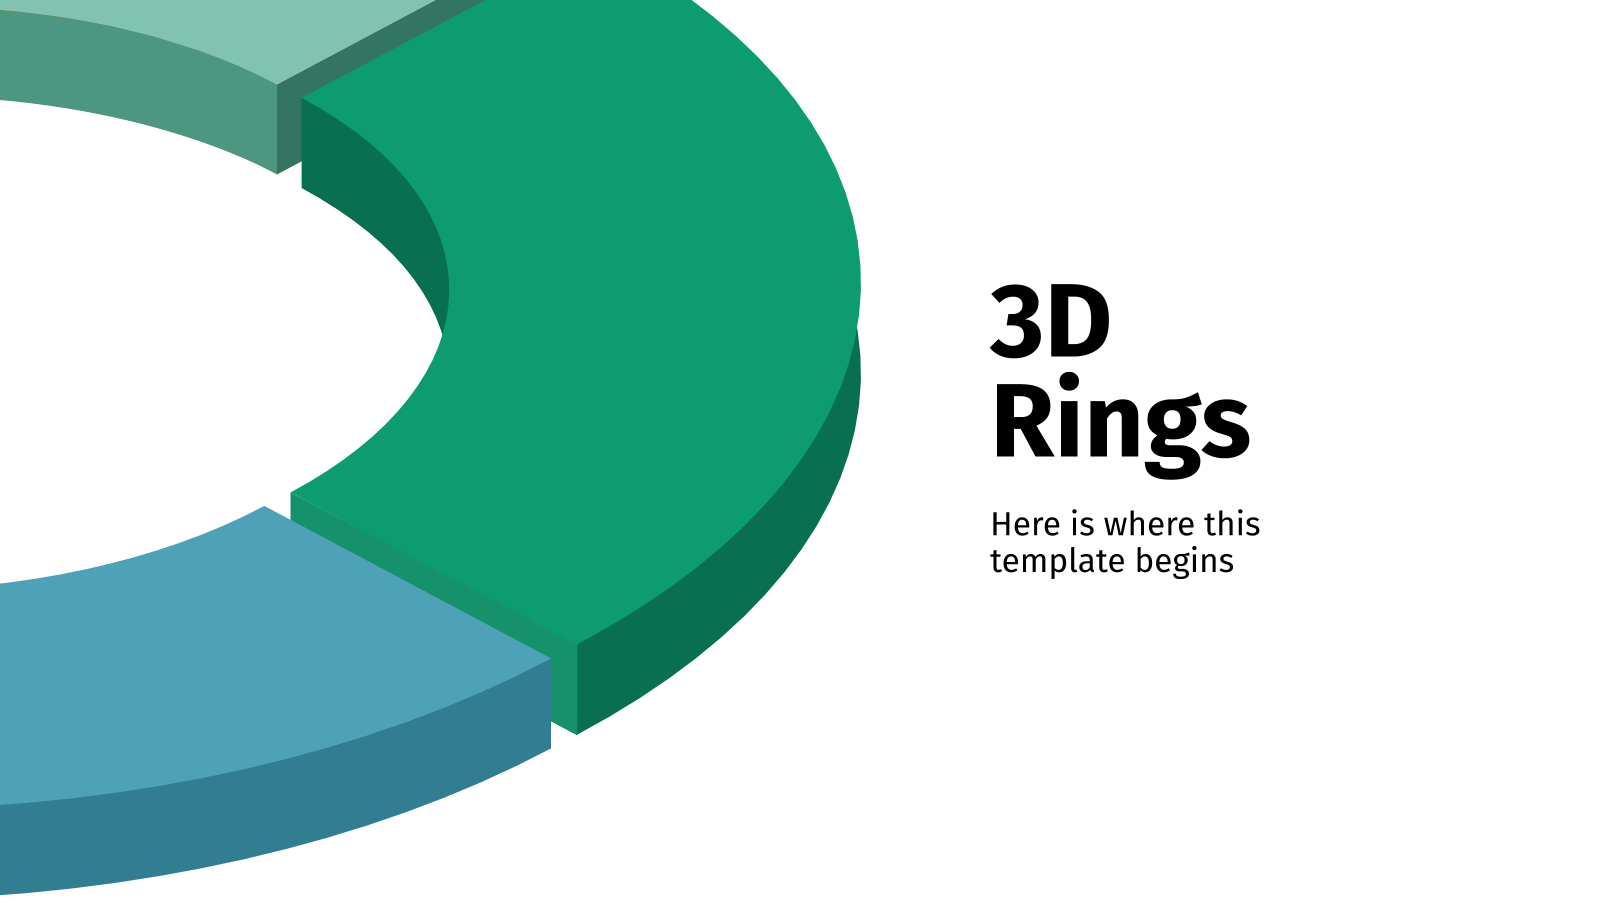 3D Rings presentation template